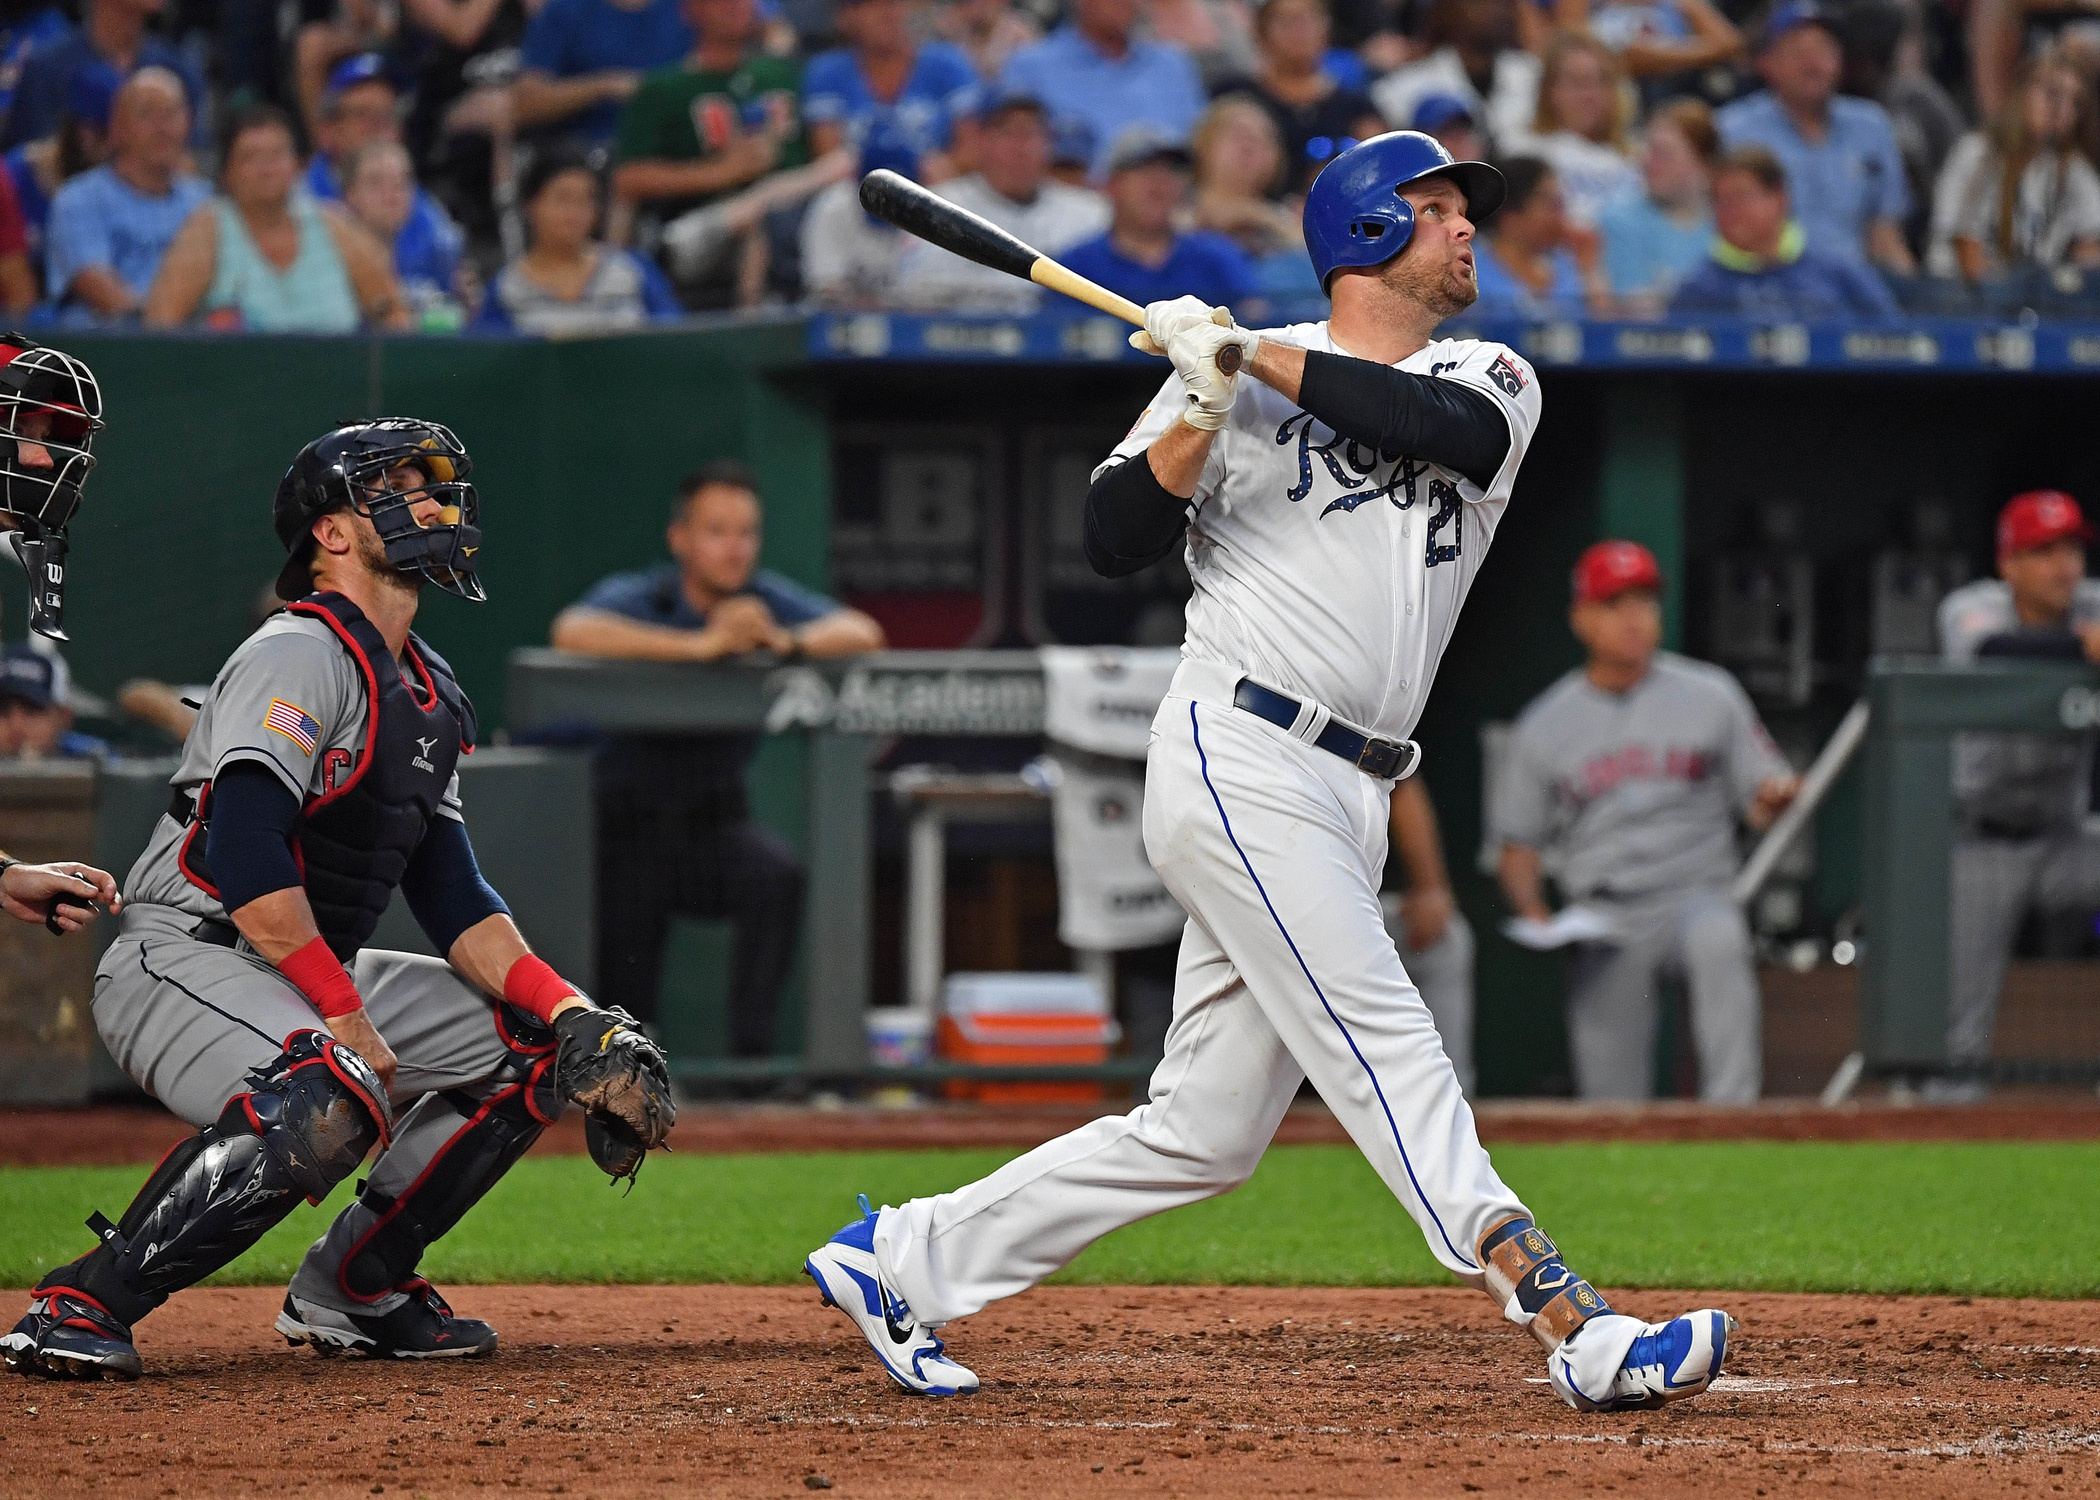 Jul 3, 2018; Kansas City, MO, USA; Kansas City Royals designated hitter Lucas Duda (21) doubles during the fifth inning against the Cleveland Indians at Kauffman Stadium. Mandatory Credit: Peter G. Aiken/USA TODAY Sports